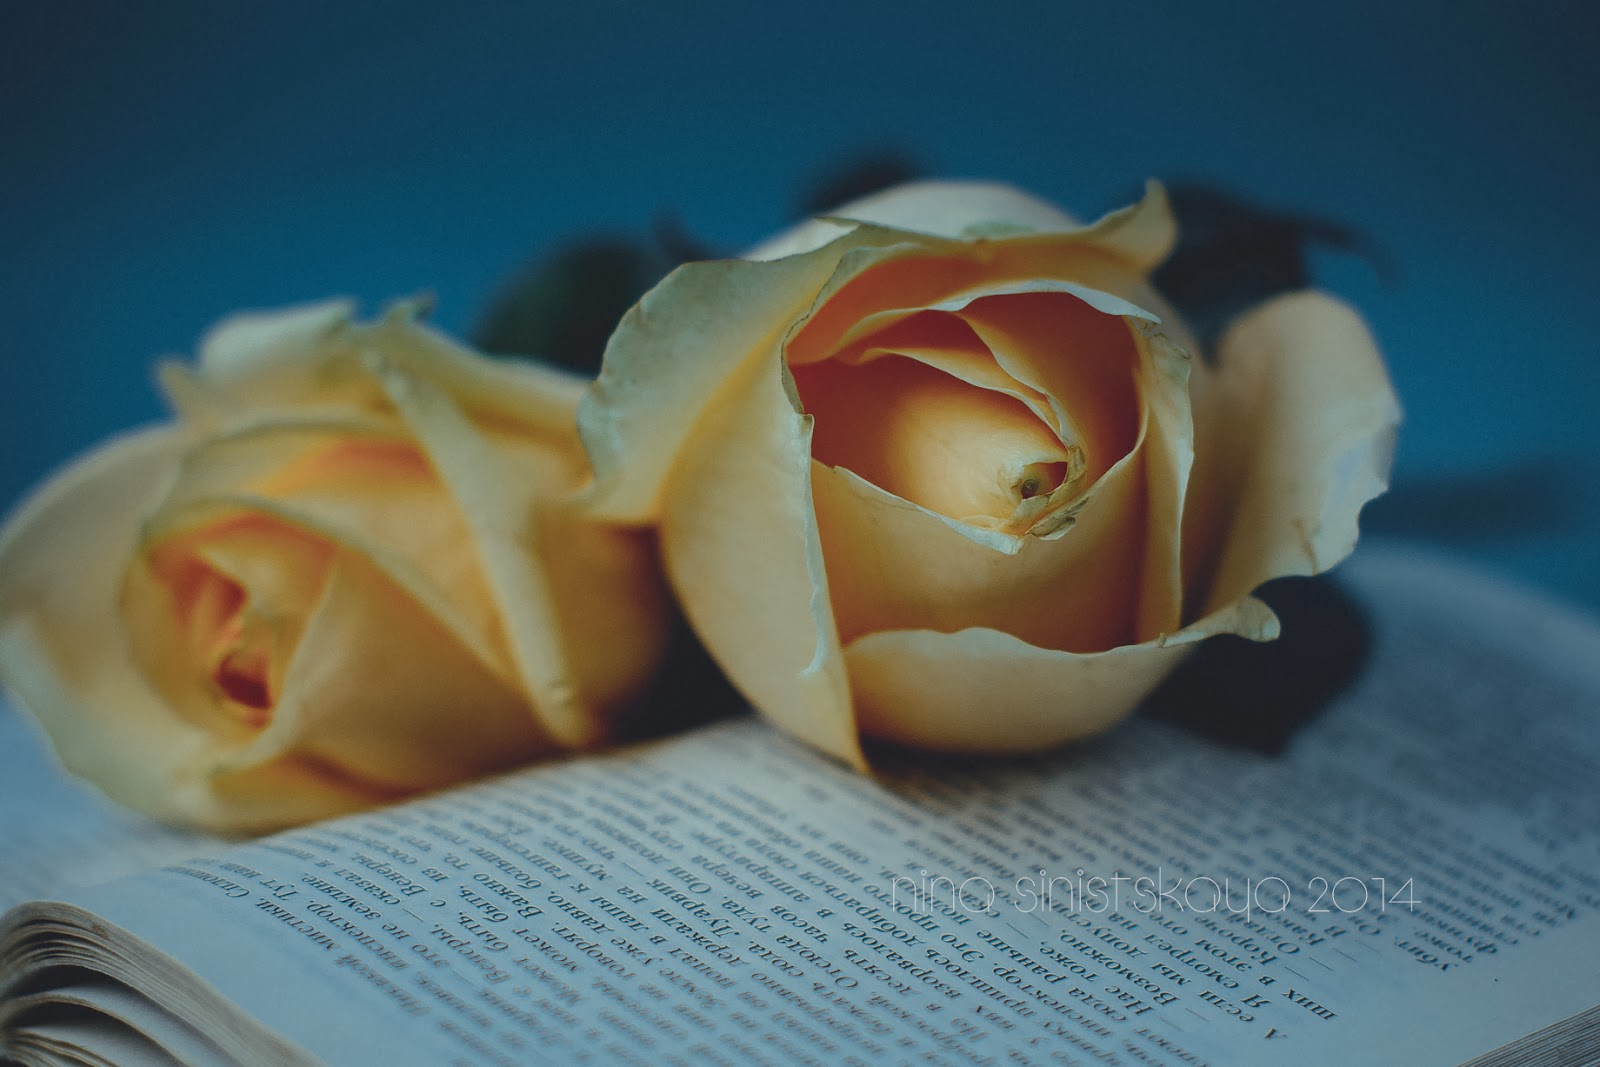 Floral Vintage Photography. Peach roses on the blue background. Vintage book with old paper pages. Soft focus and dreamy look